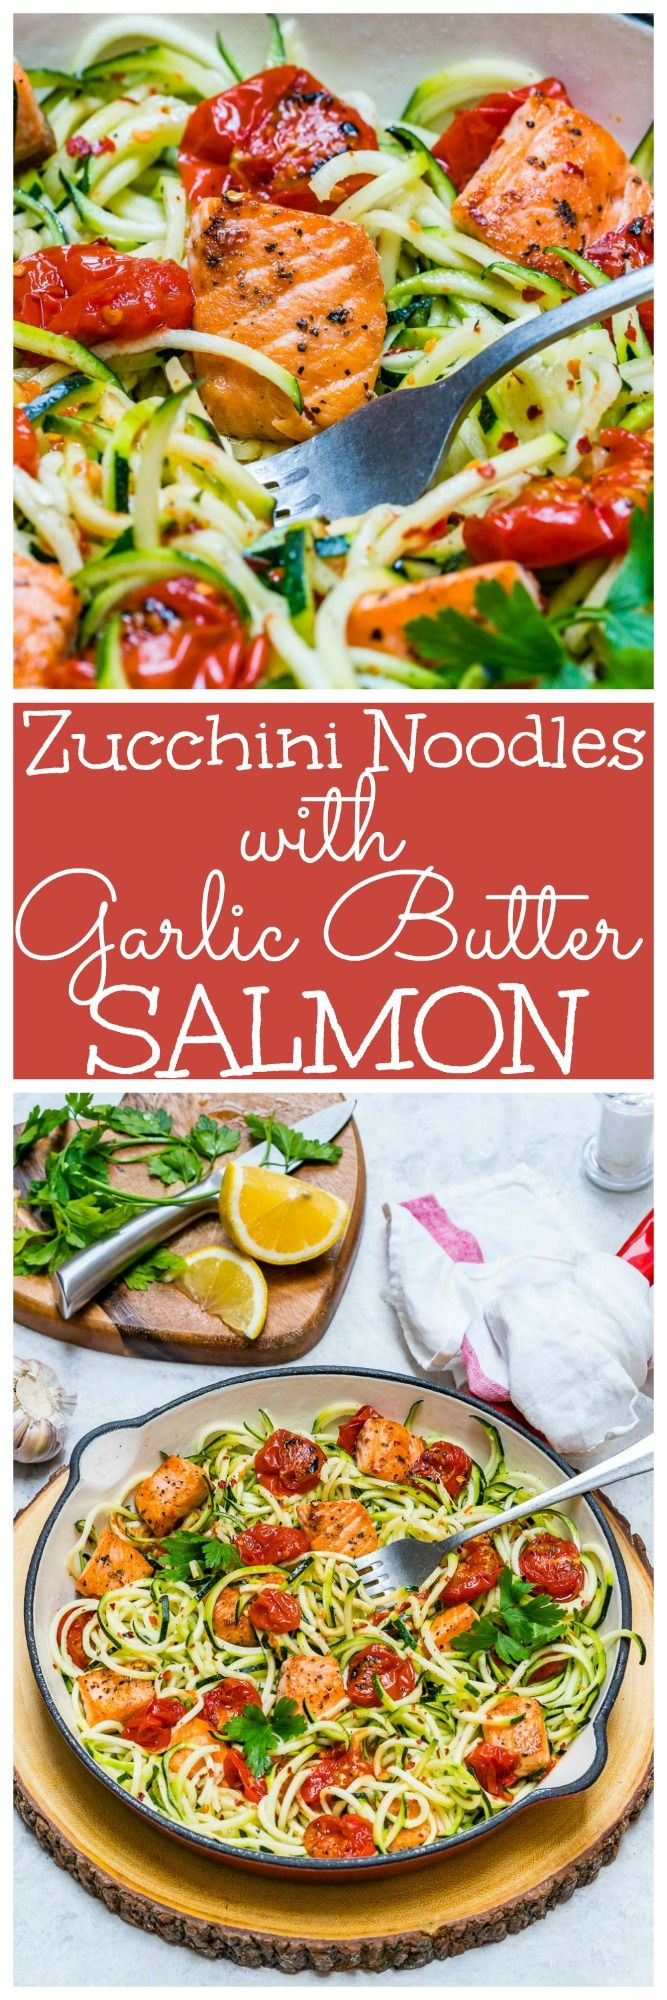 Eat Clean: Garlic Butter Salmon + Zoodles to Lose Weight & Energize! - Clean Food Crush